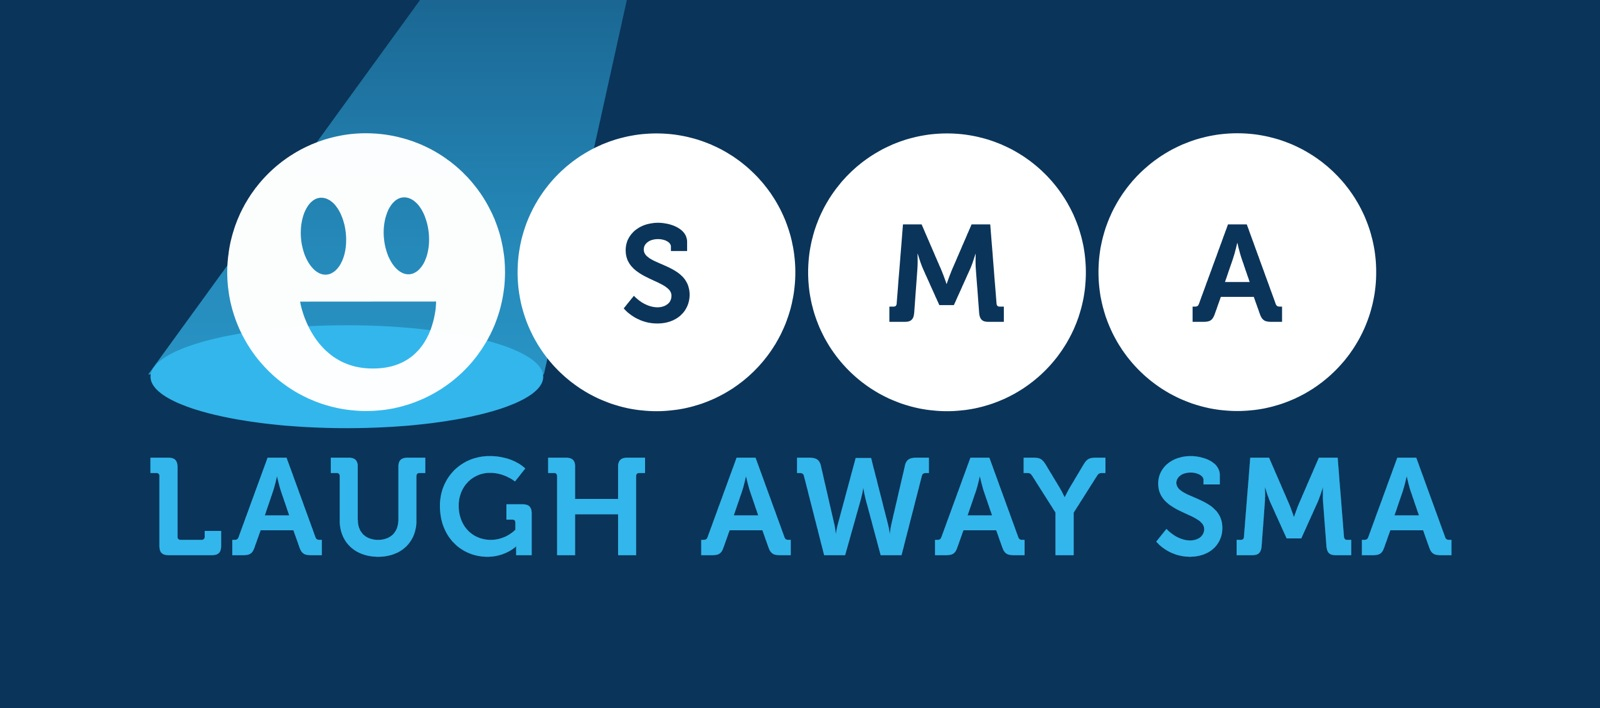 Laugh Away SMA logo